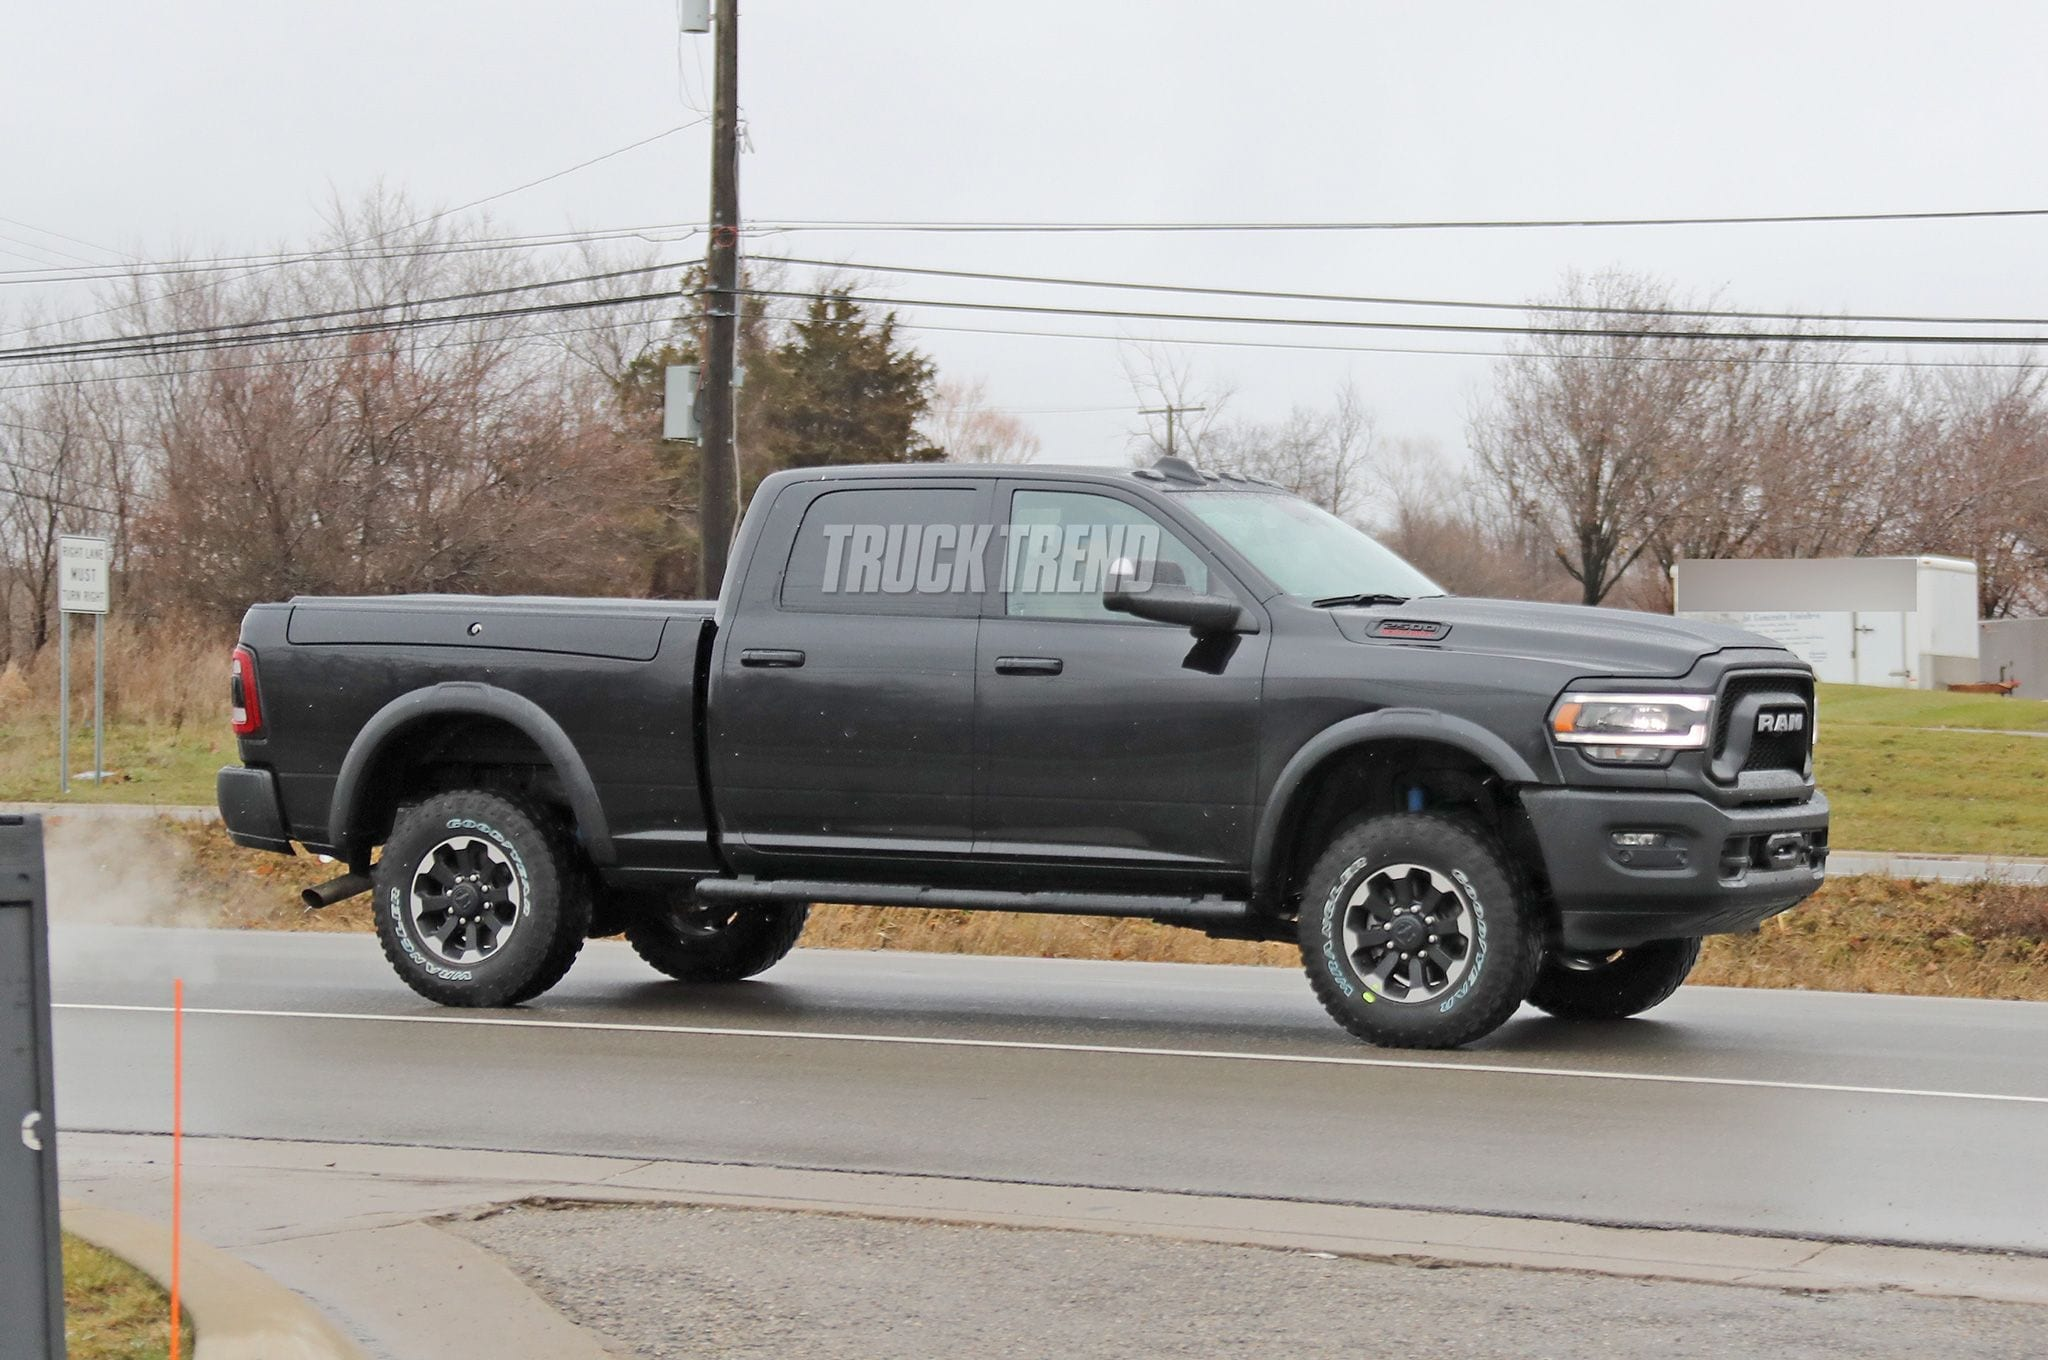 2020 Ram Power Wagon Cummins Engine, Interior, Release Date >> 2020 Ram Heavy Duty Trucks What To Expect Pickup Truck Suv Talk